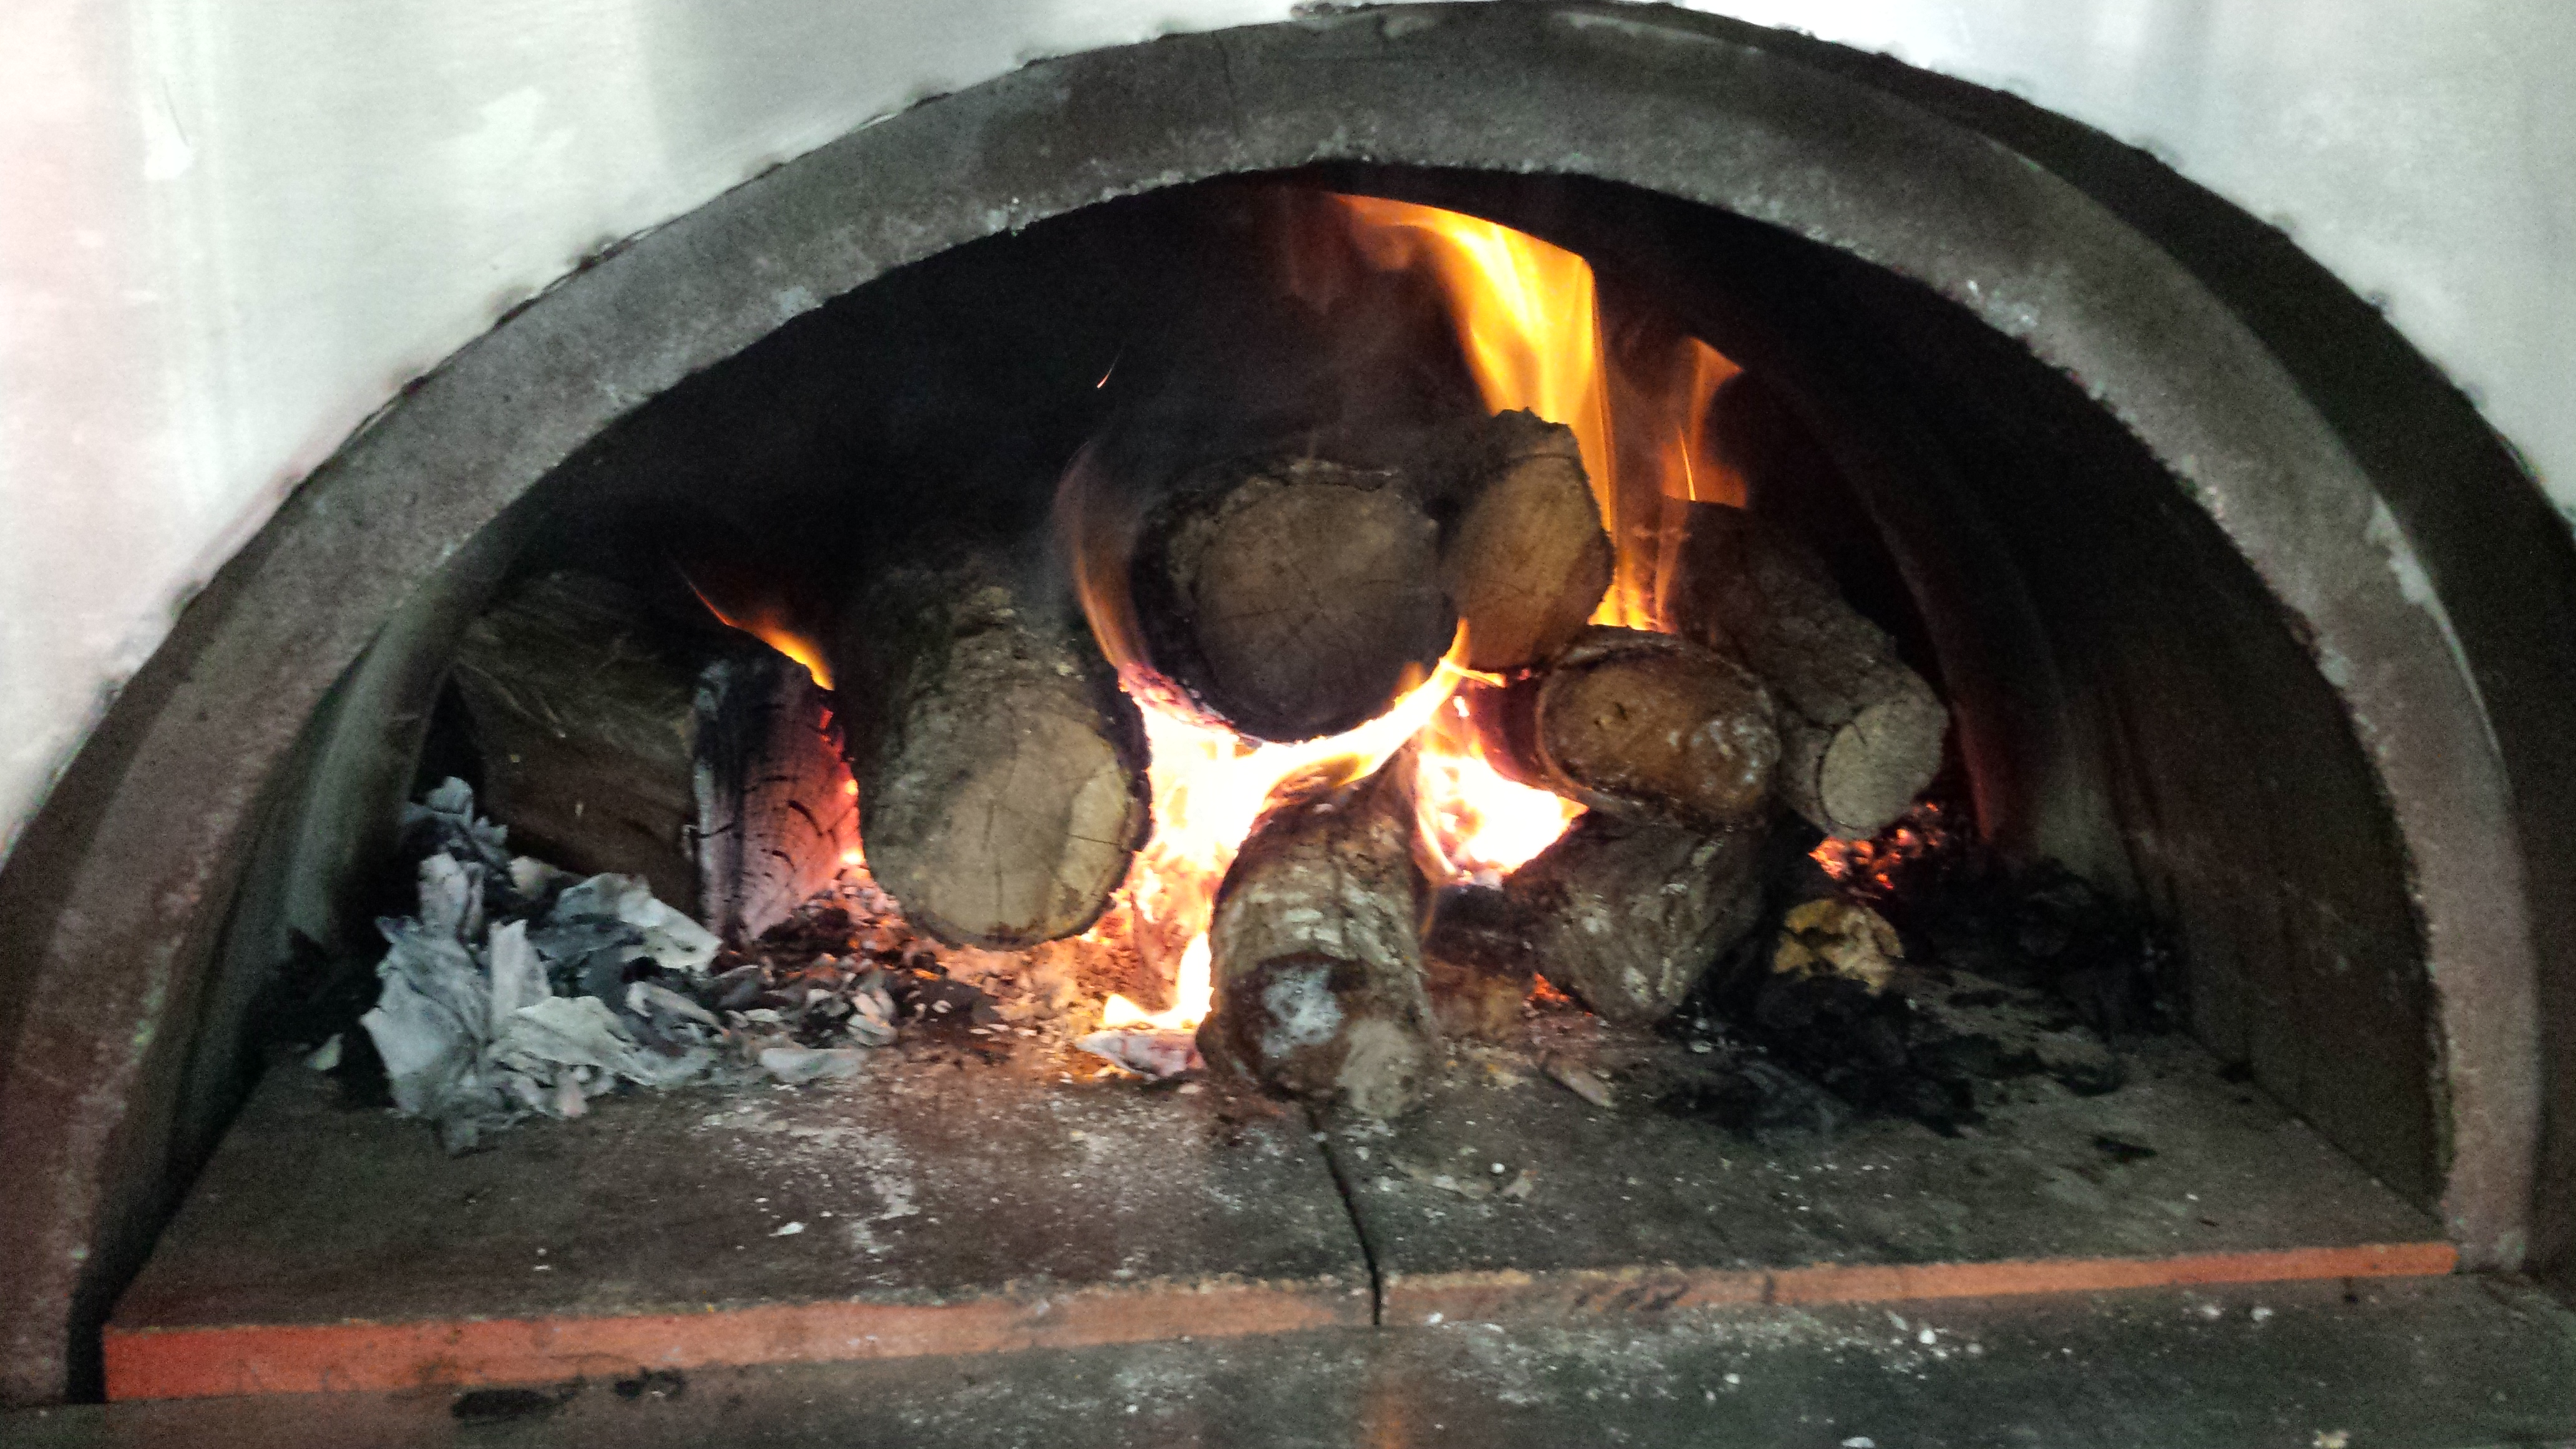 Central Texas Phoenix Brick Oven Pizza Fire